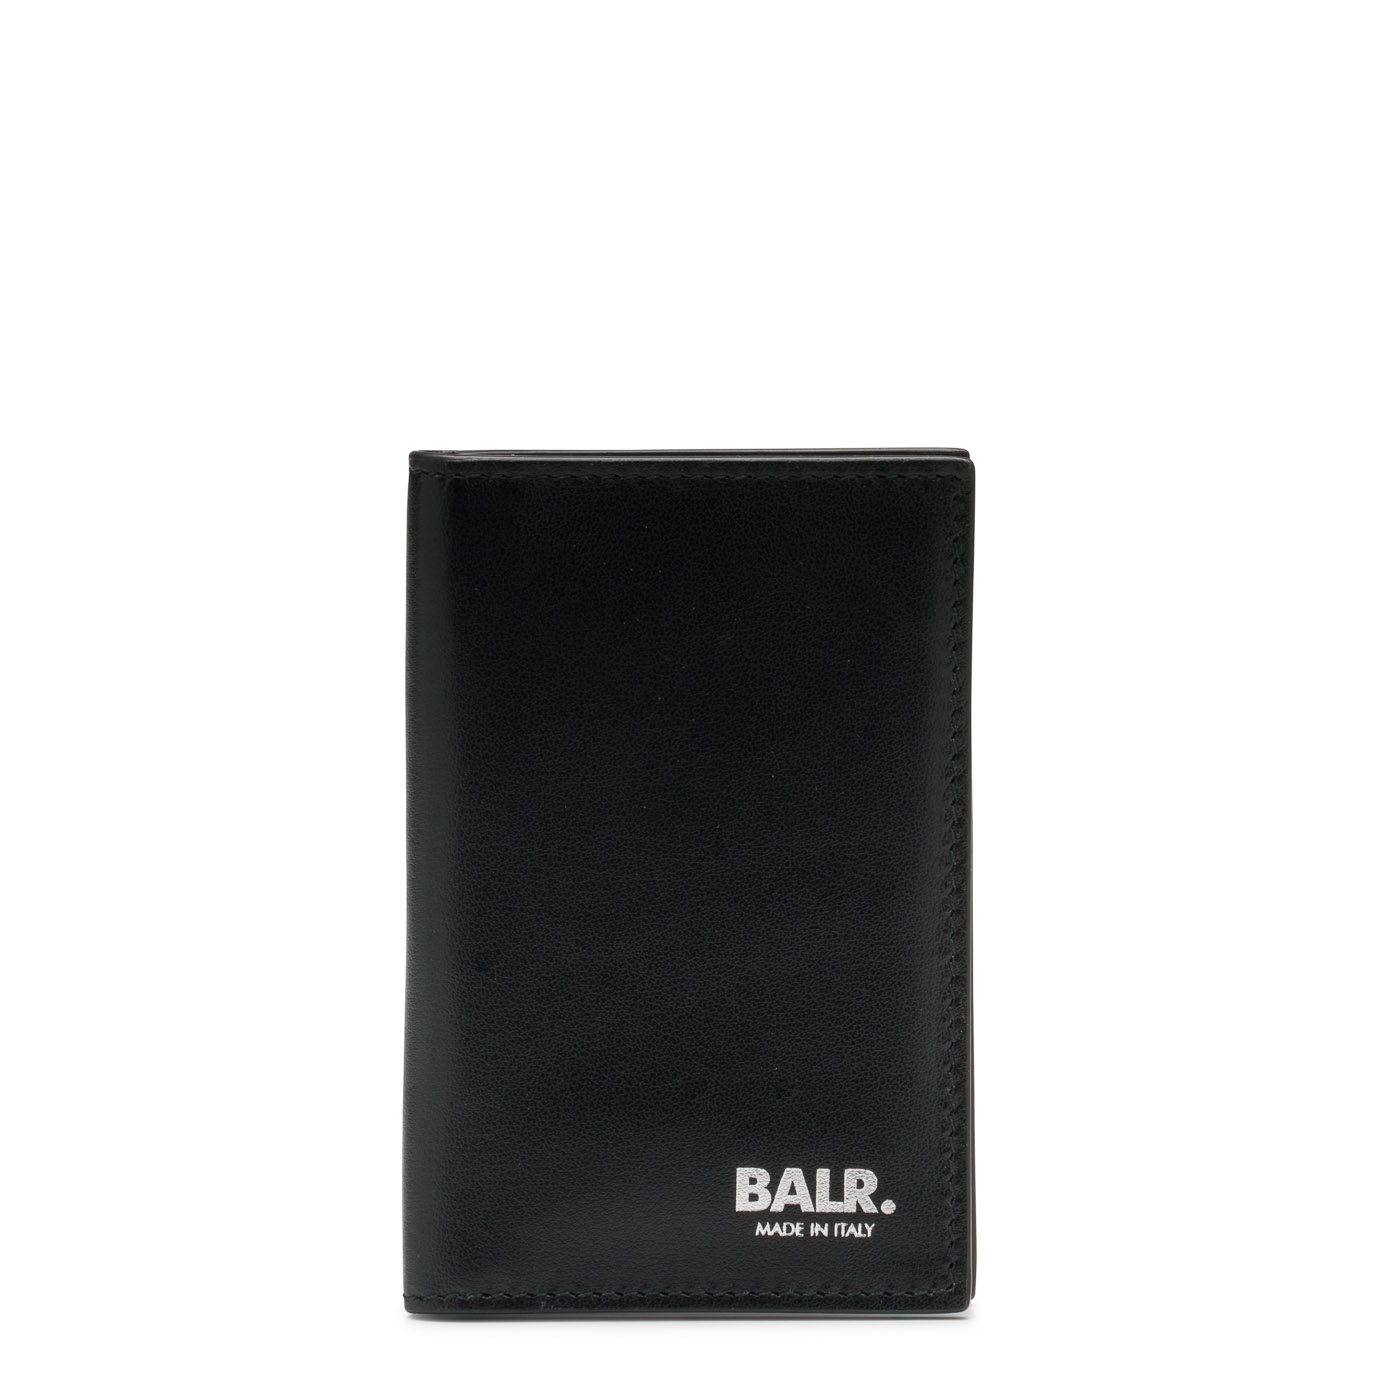 Bilde av BALR. Black Leather Wallet 8719777007823